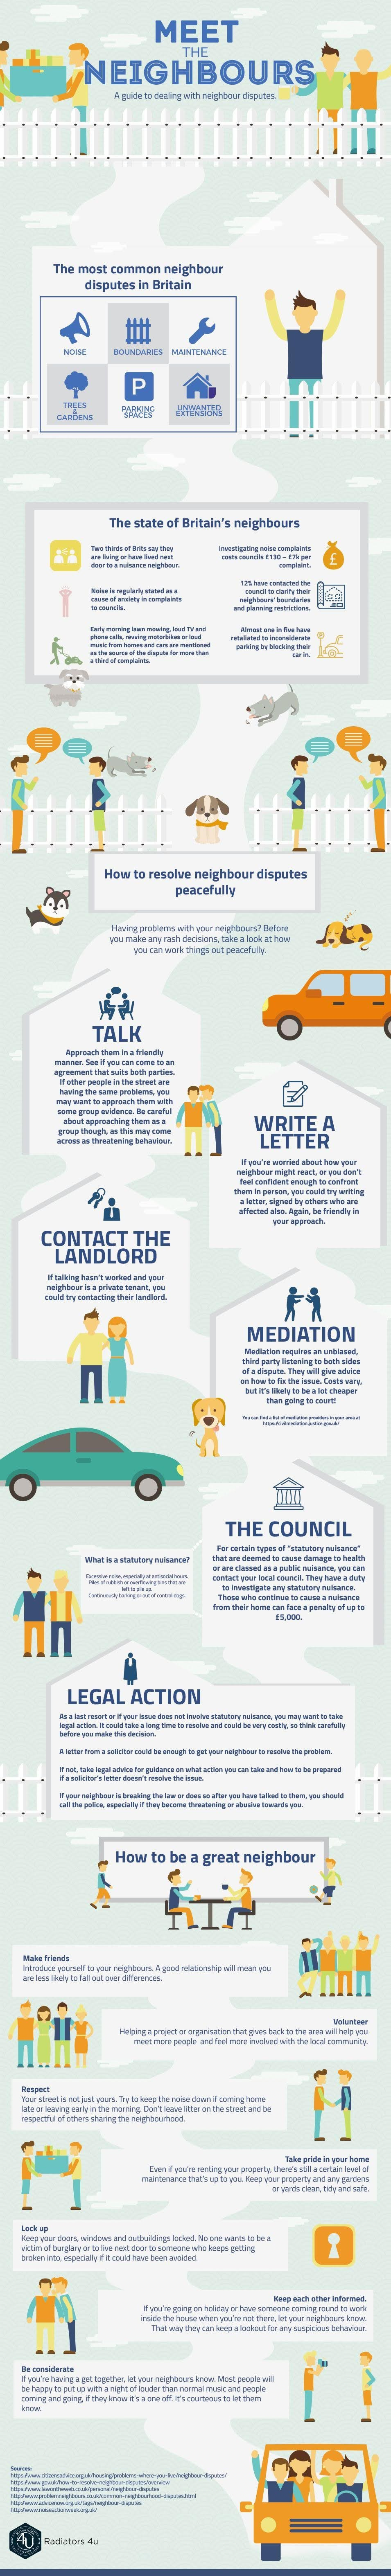 A Guide to Dealing with Neighbor Disputes #infographic